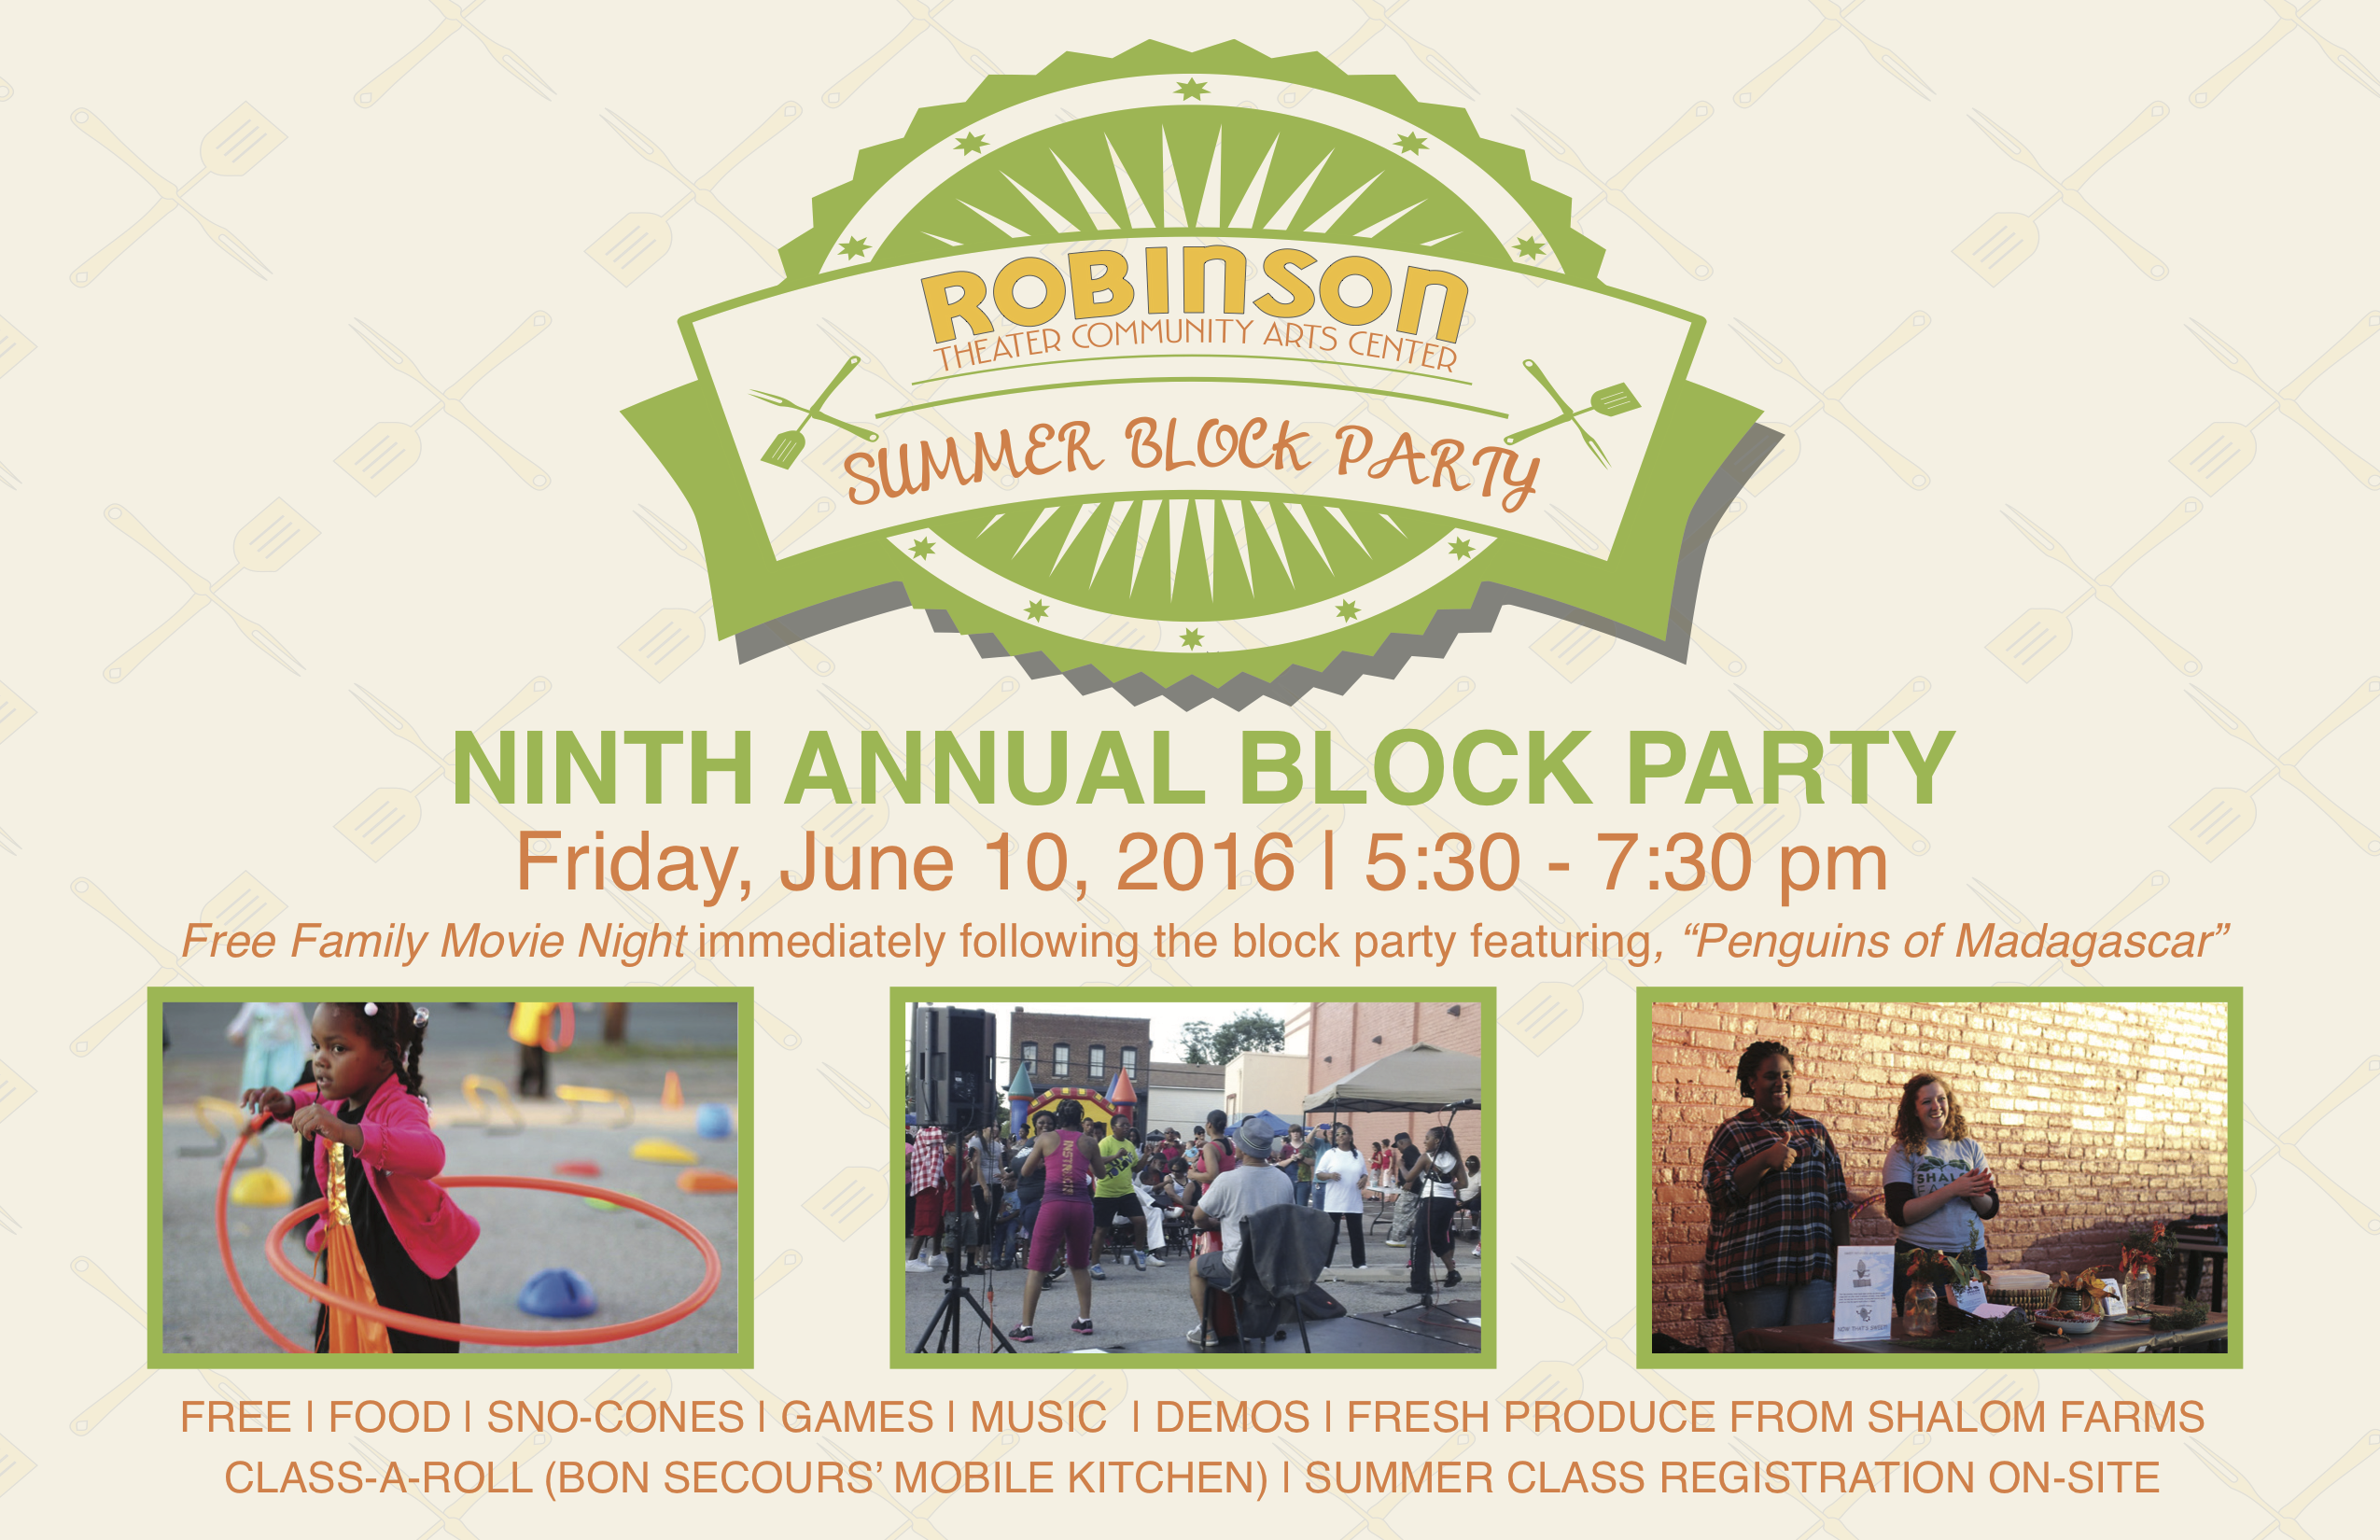 robinson theater s summer block party is tonight church hill people 39 s news richmond virginia. Black Bedroom Furniture Sets. Home Design Ideas